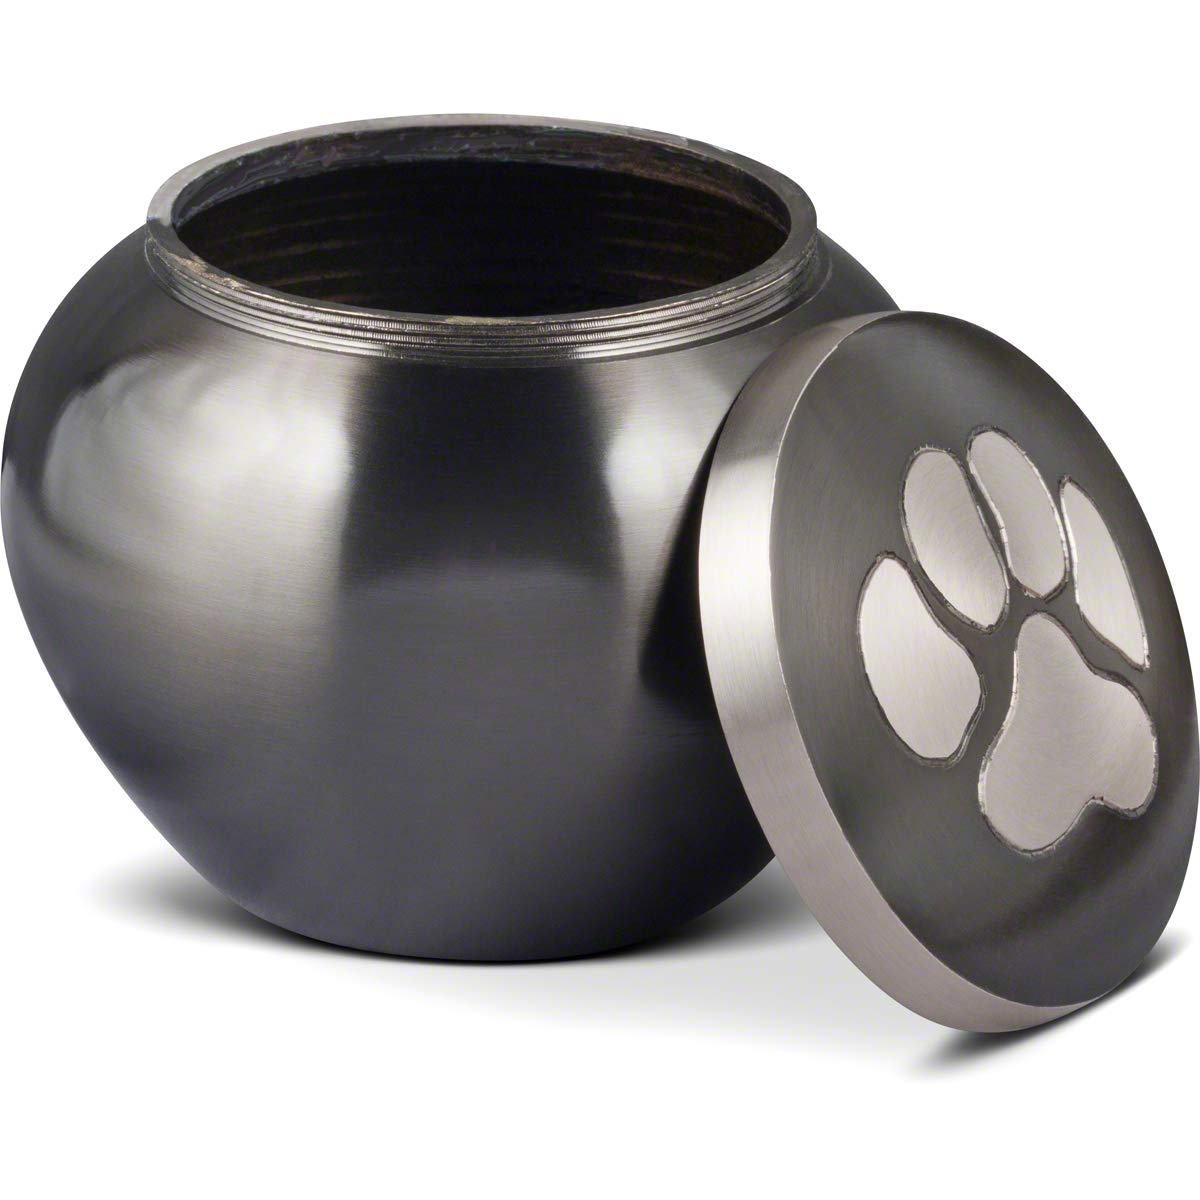 Dog and Cat Pet Cremation Urn, The Mia Series with Slate Finish and Hand Carved Pewter Paw, Small Size to Memorialize Pets up to 25lbs by Best Friend Services